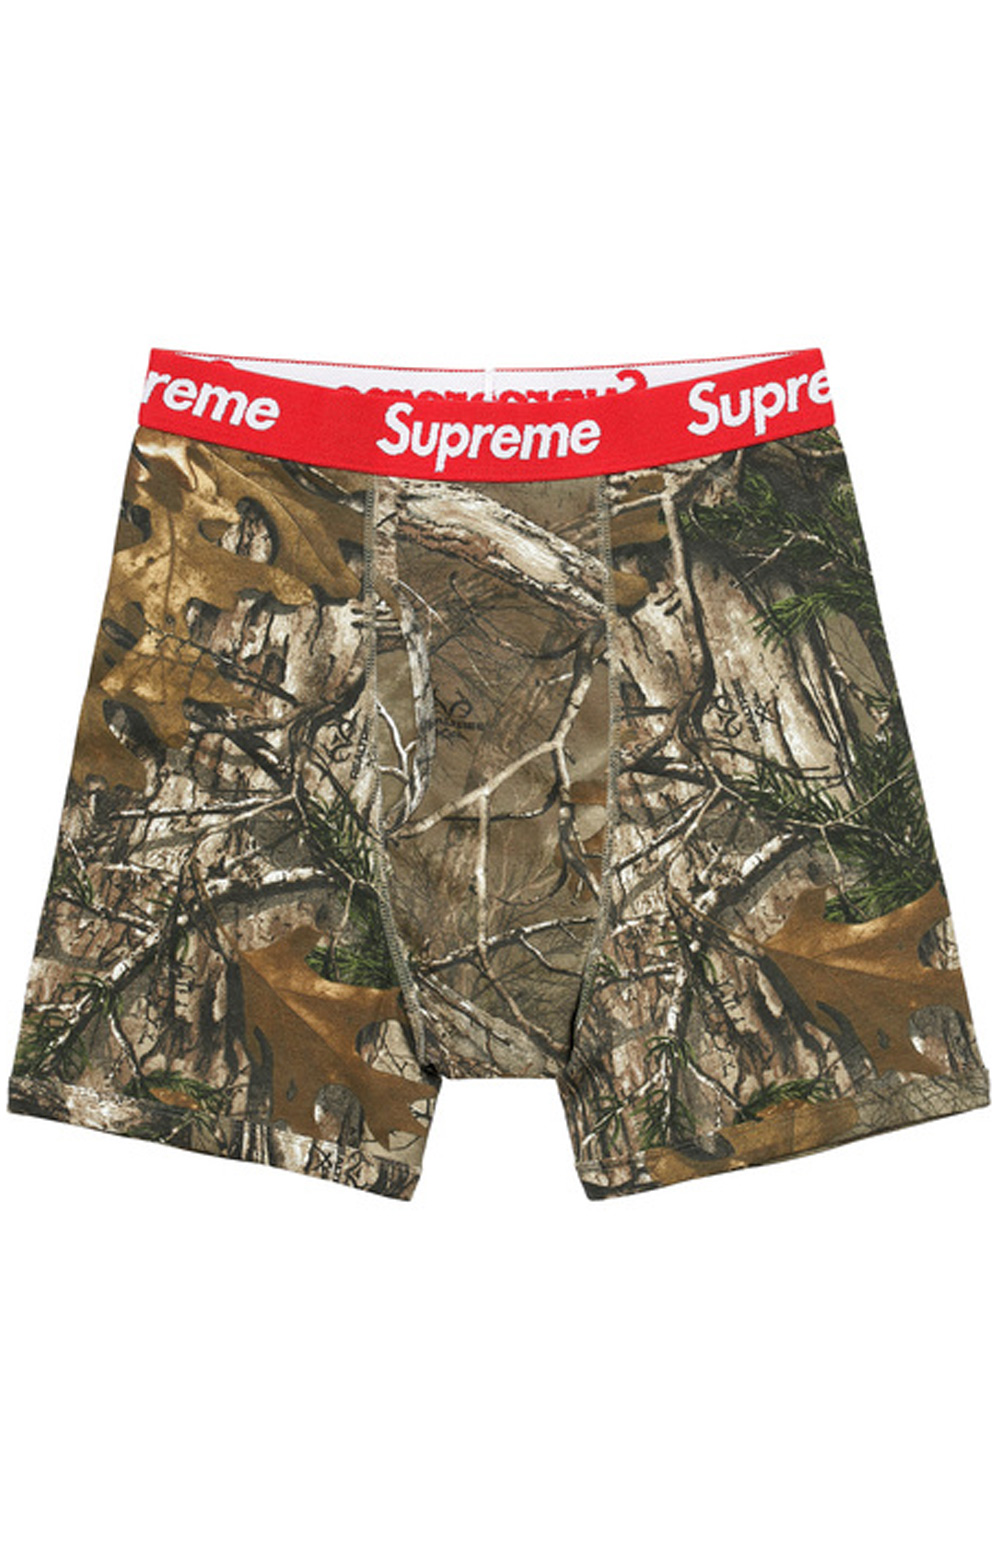 Limited Edition Supreme Underwear - Just Me And Supreme